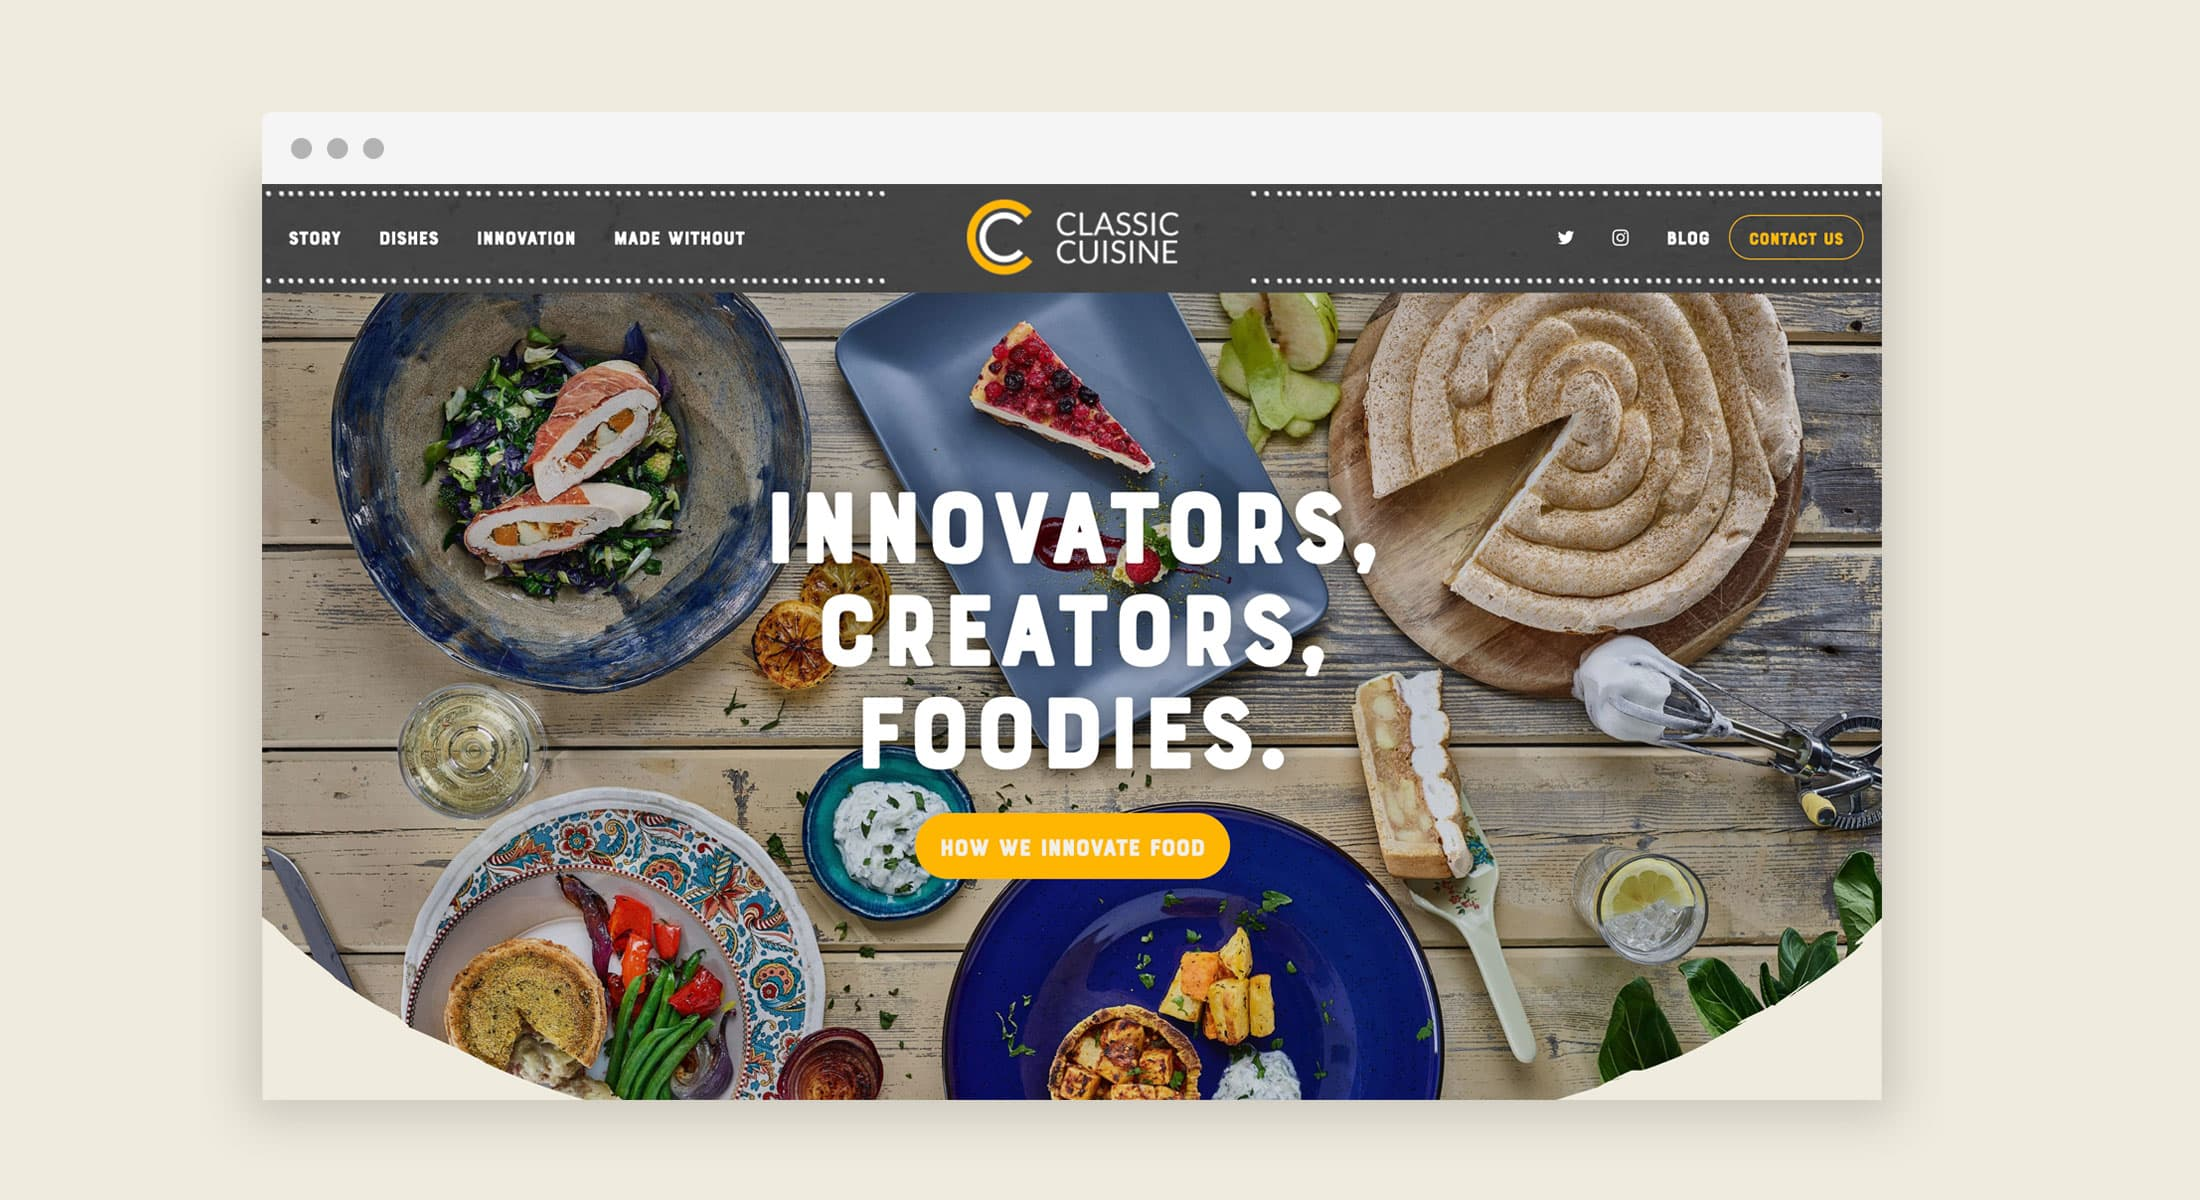 View our Eat Marketing case study on Classic Cuisine.